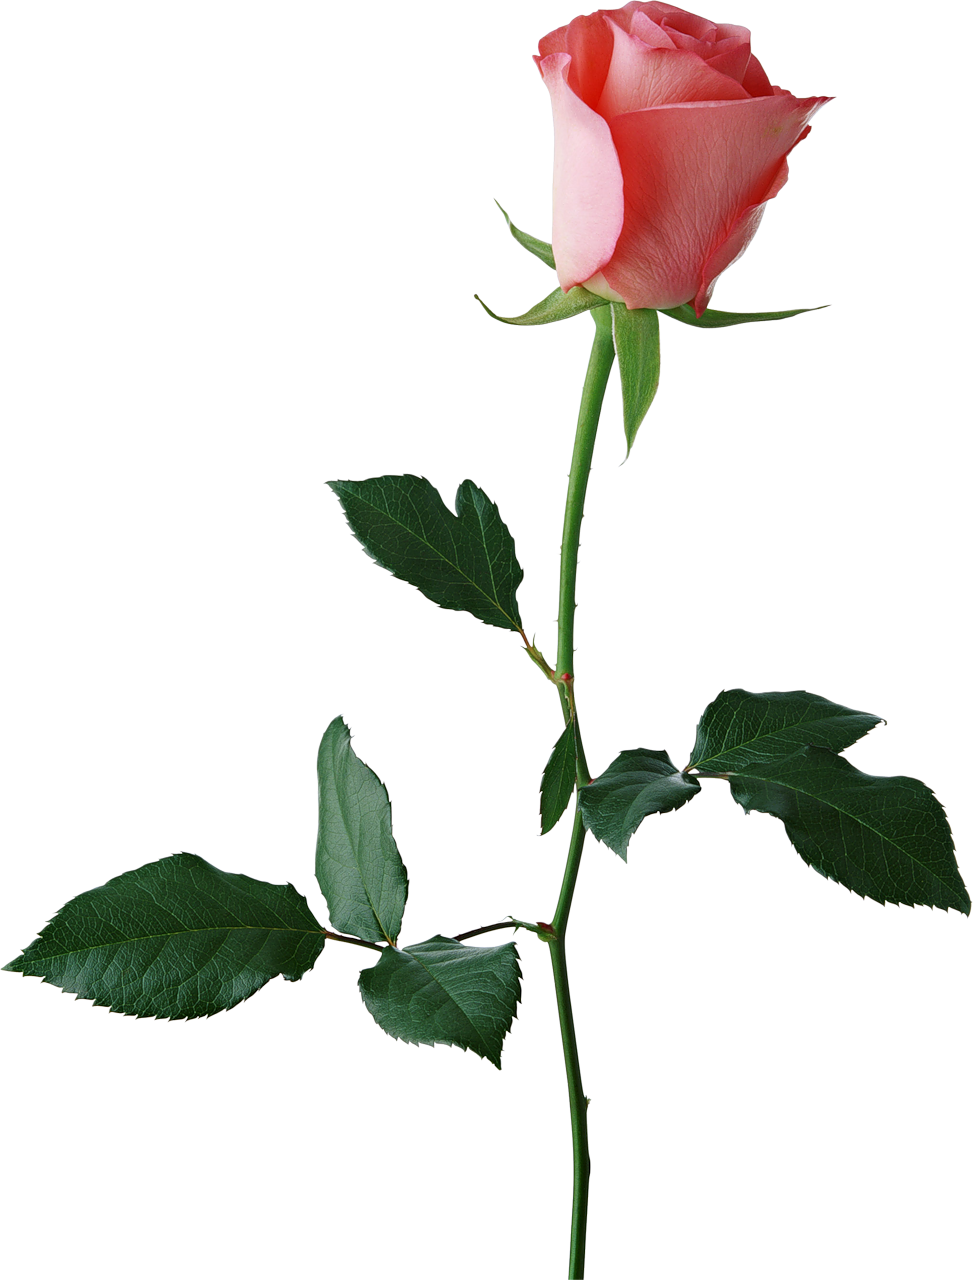 Flower buds clipart. Large rose bud png